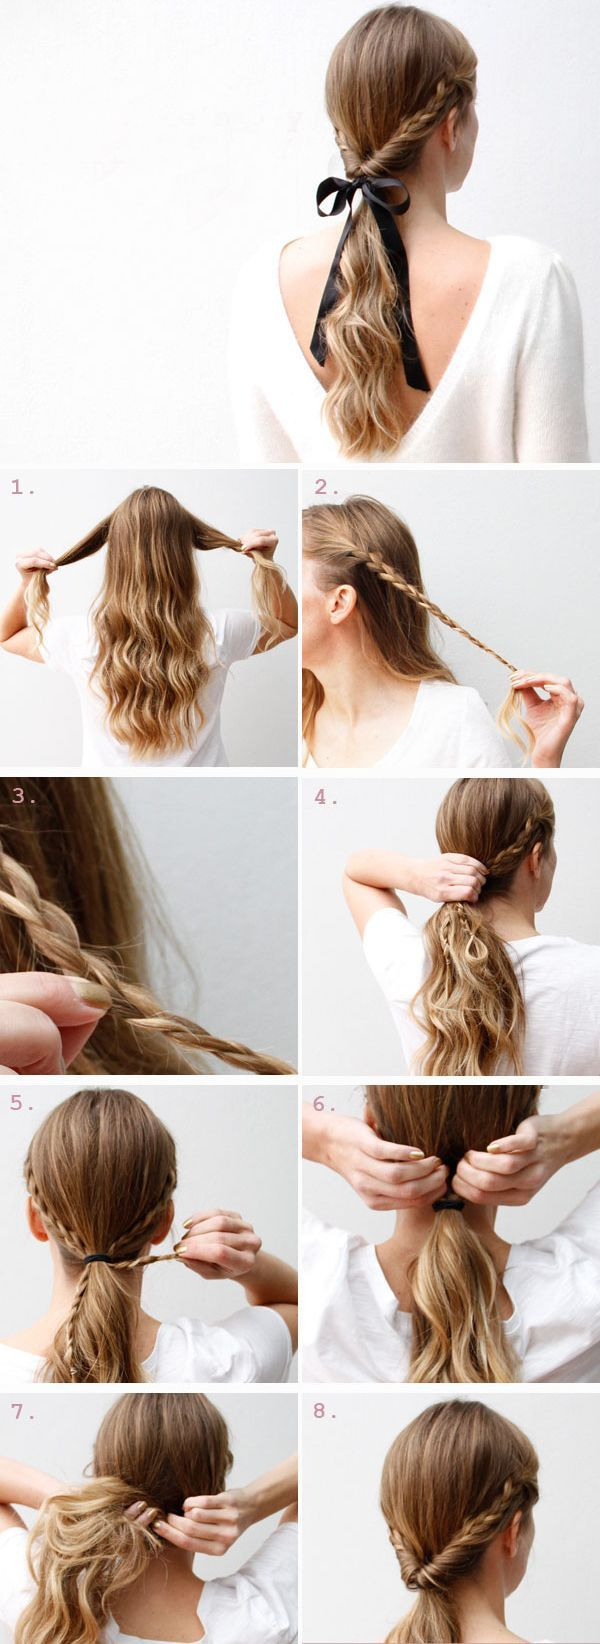 Easy step by step hairstyle tutorials for long hair long hairstyle